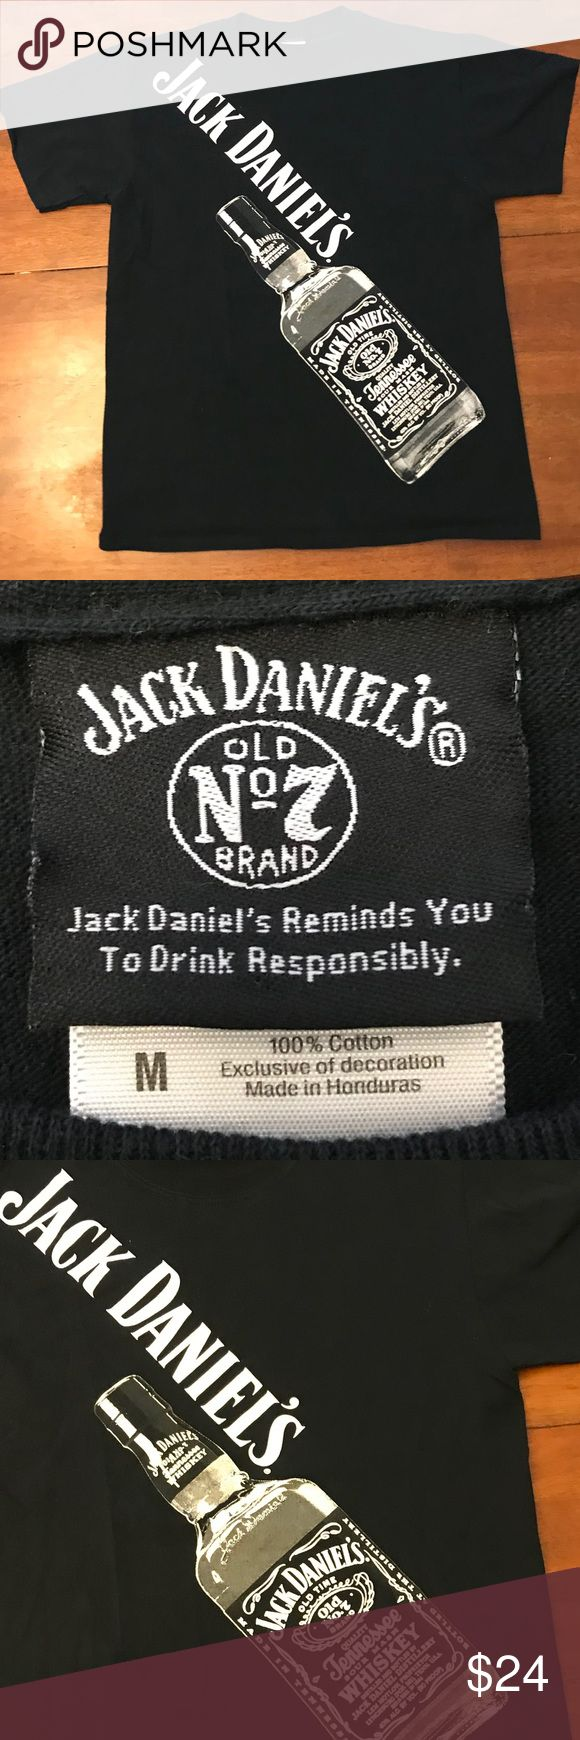 Vintage Jack Daniels Whiskey T-shirt G-Eazy Sz M I love me some Jack! I know you do too, so don't hide it. In fact be proud rock this shirt out all night long. You know G-Eazy would! Men's size Medium. No rips no stains no holes. I ship fast and my items are the freshest! Jack Daniel's Shirts Tees - Short Sleeve